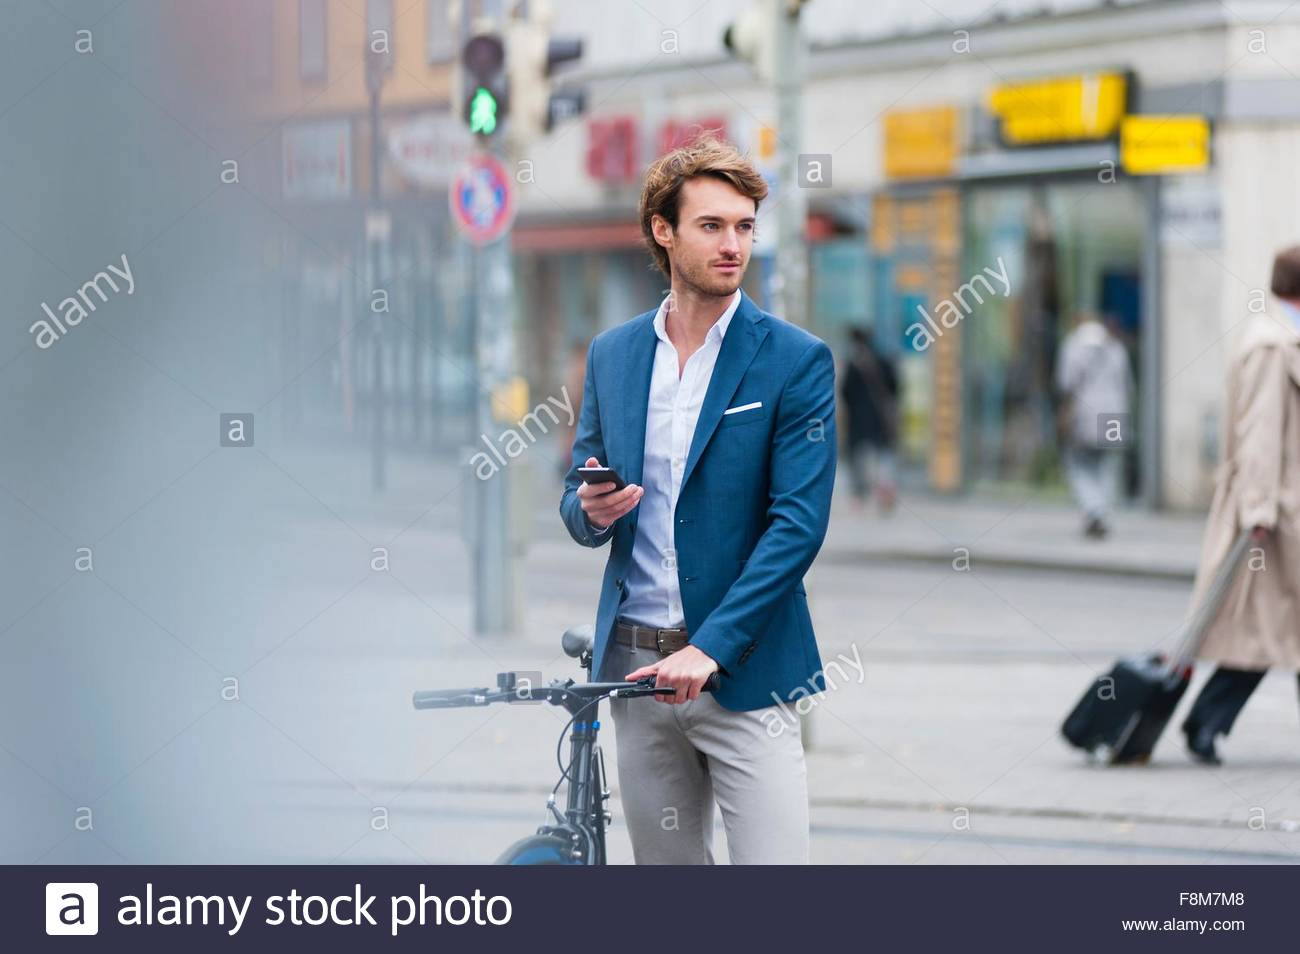 Young man with bicycle in busy street holding mobile phone looking away - Stock Image